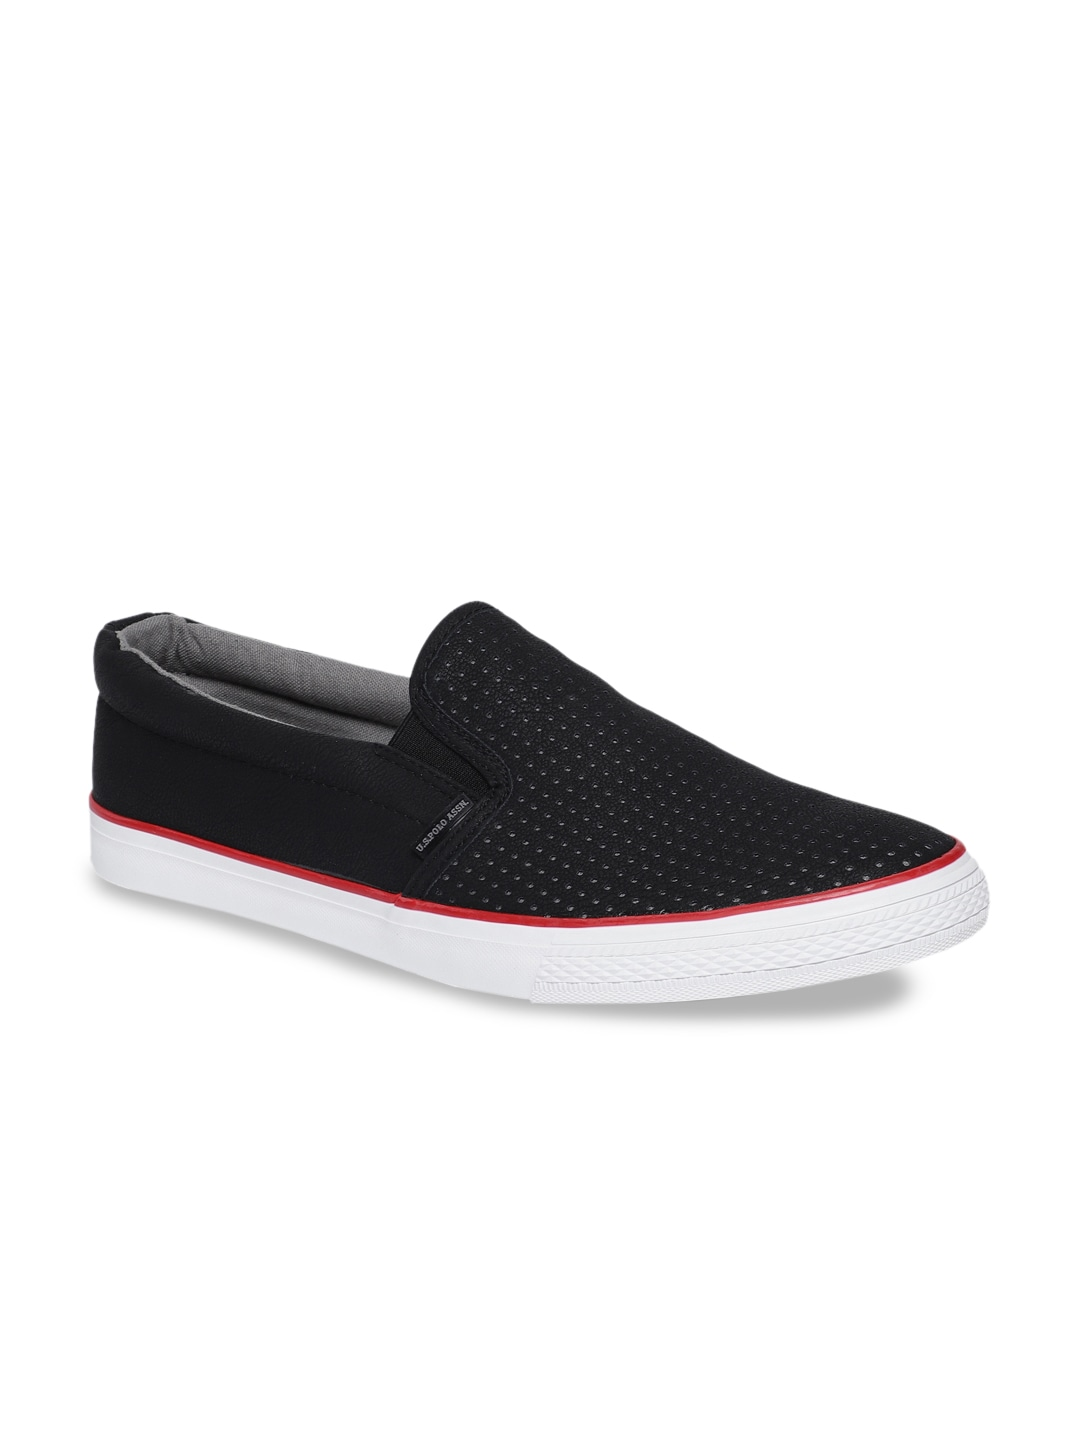 Black Slip-On Sneakers